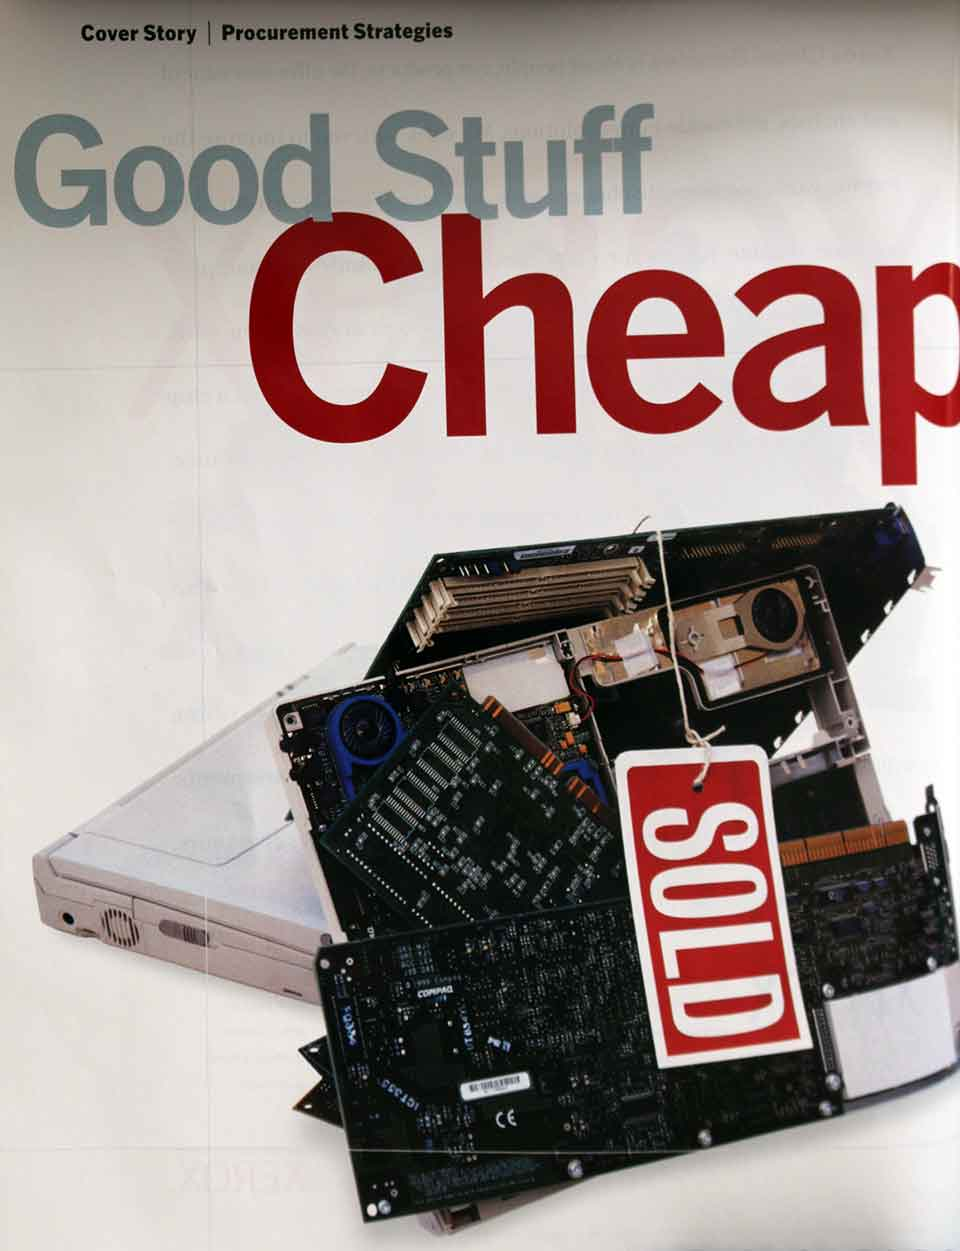 CIO Magazine - Good Stuff Cheap